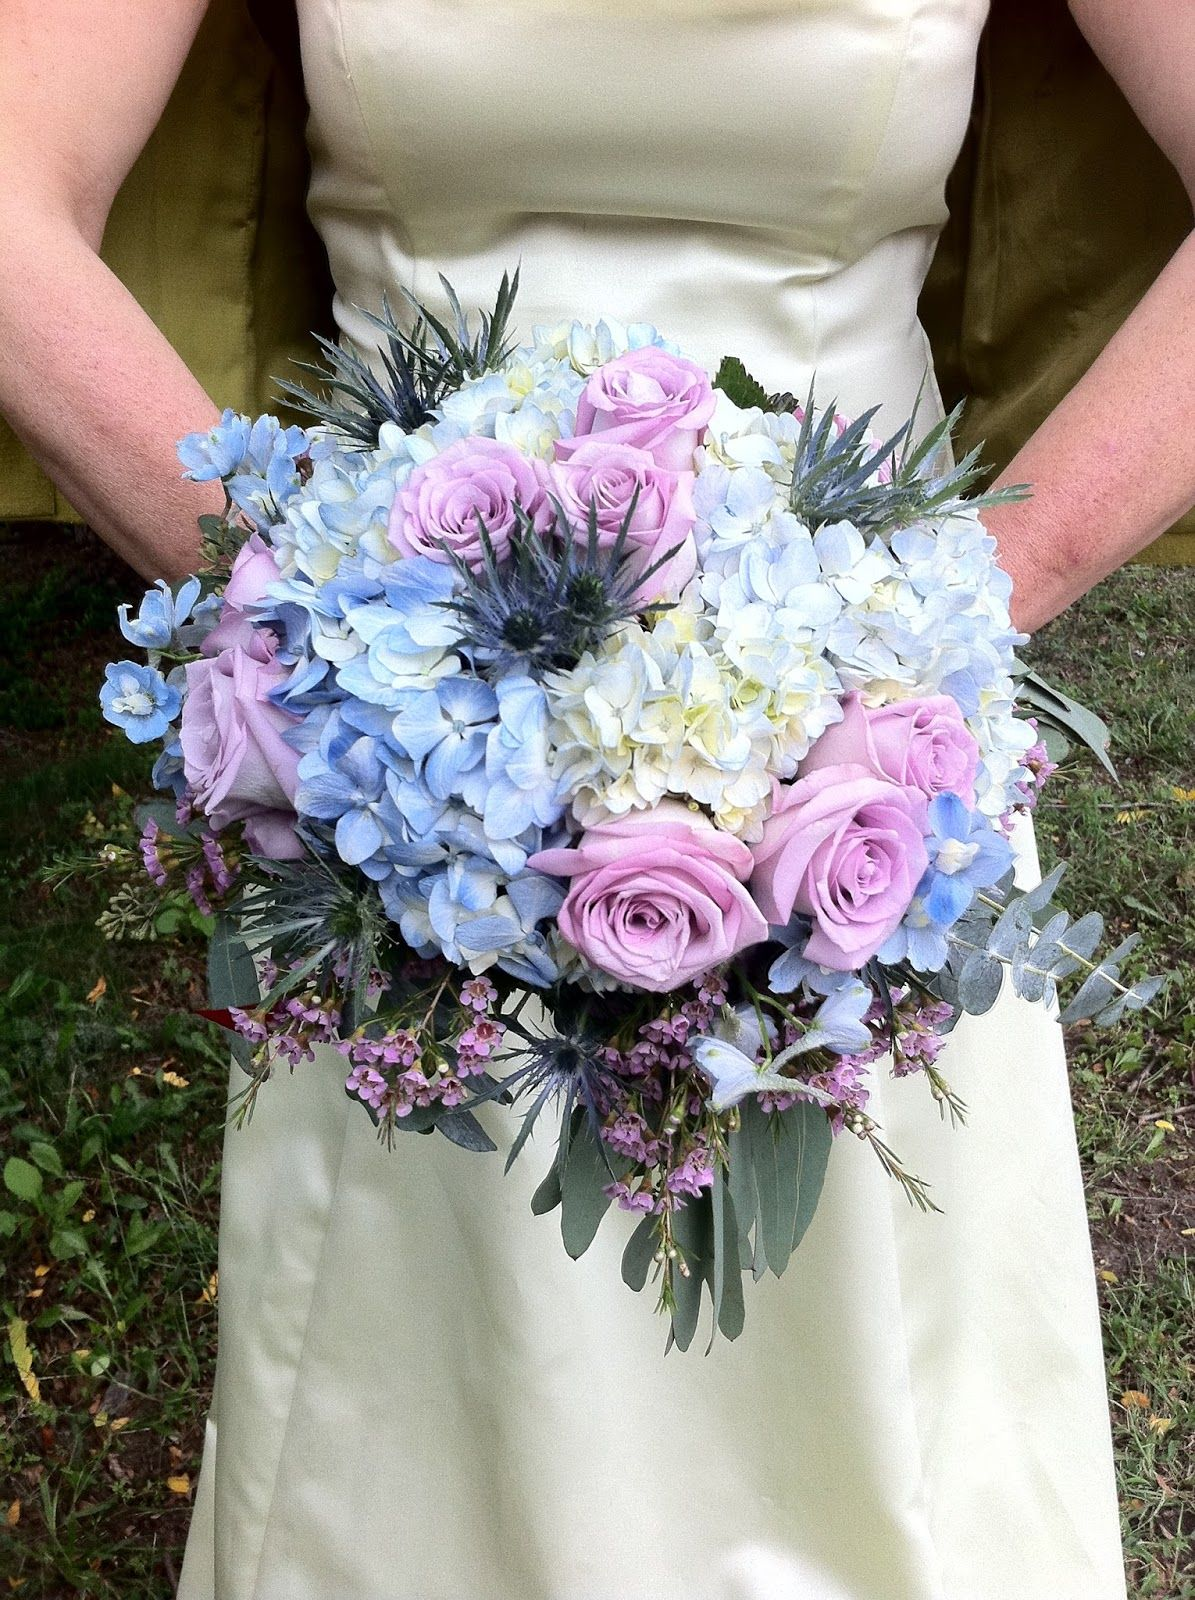 blue and lavender rose and hydrangea wedding bridal bouquet